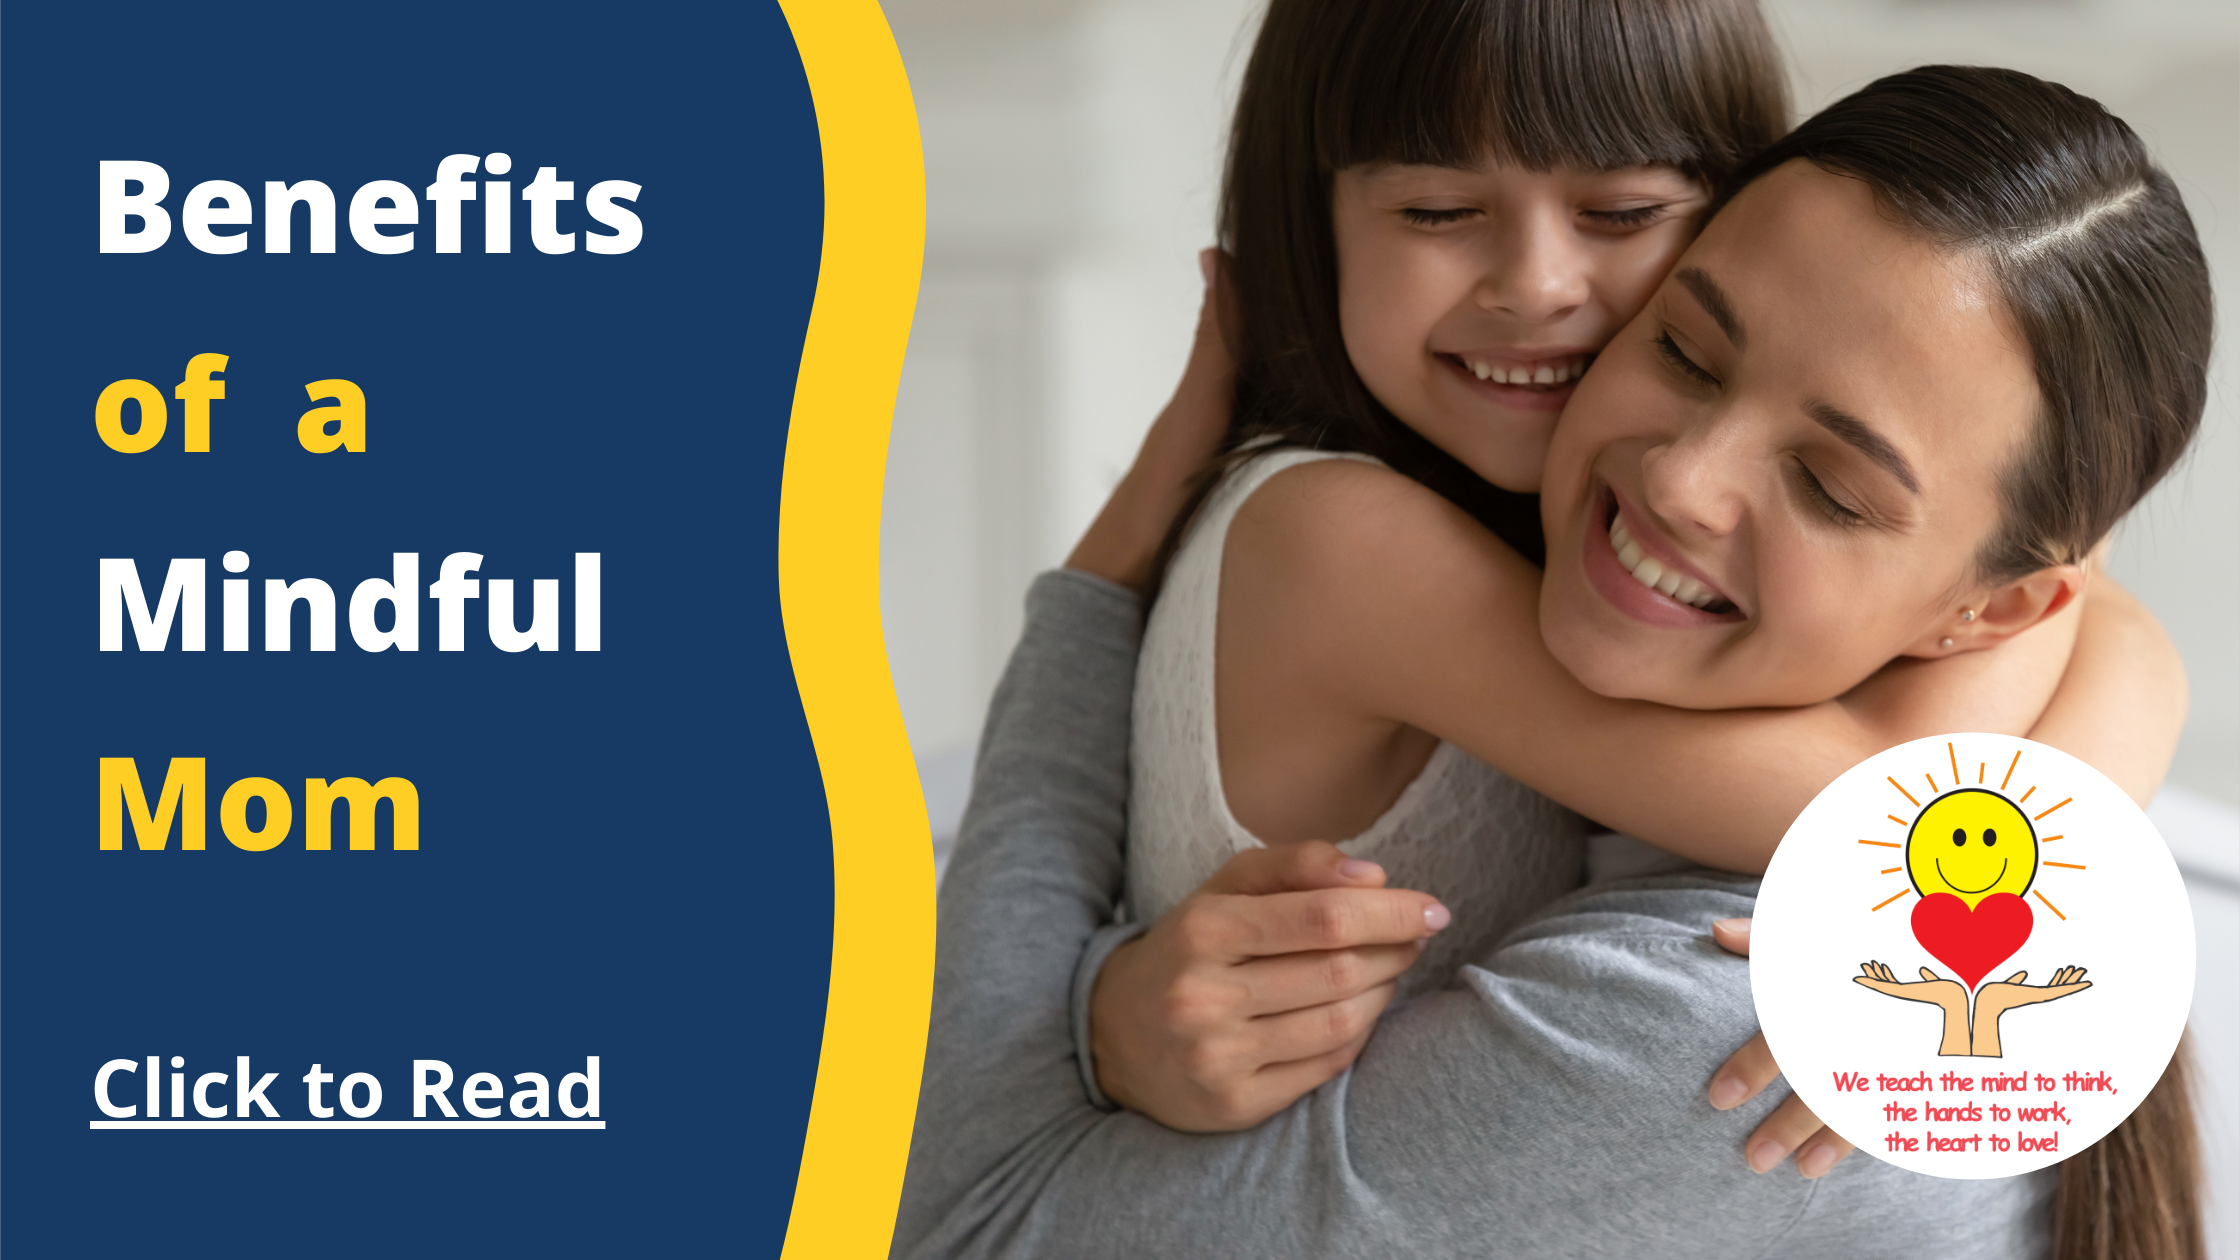 Benefits of a Mindful Mom